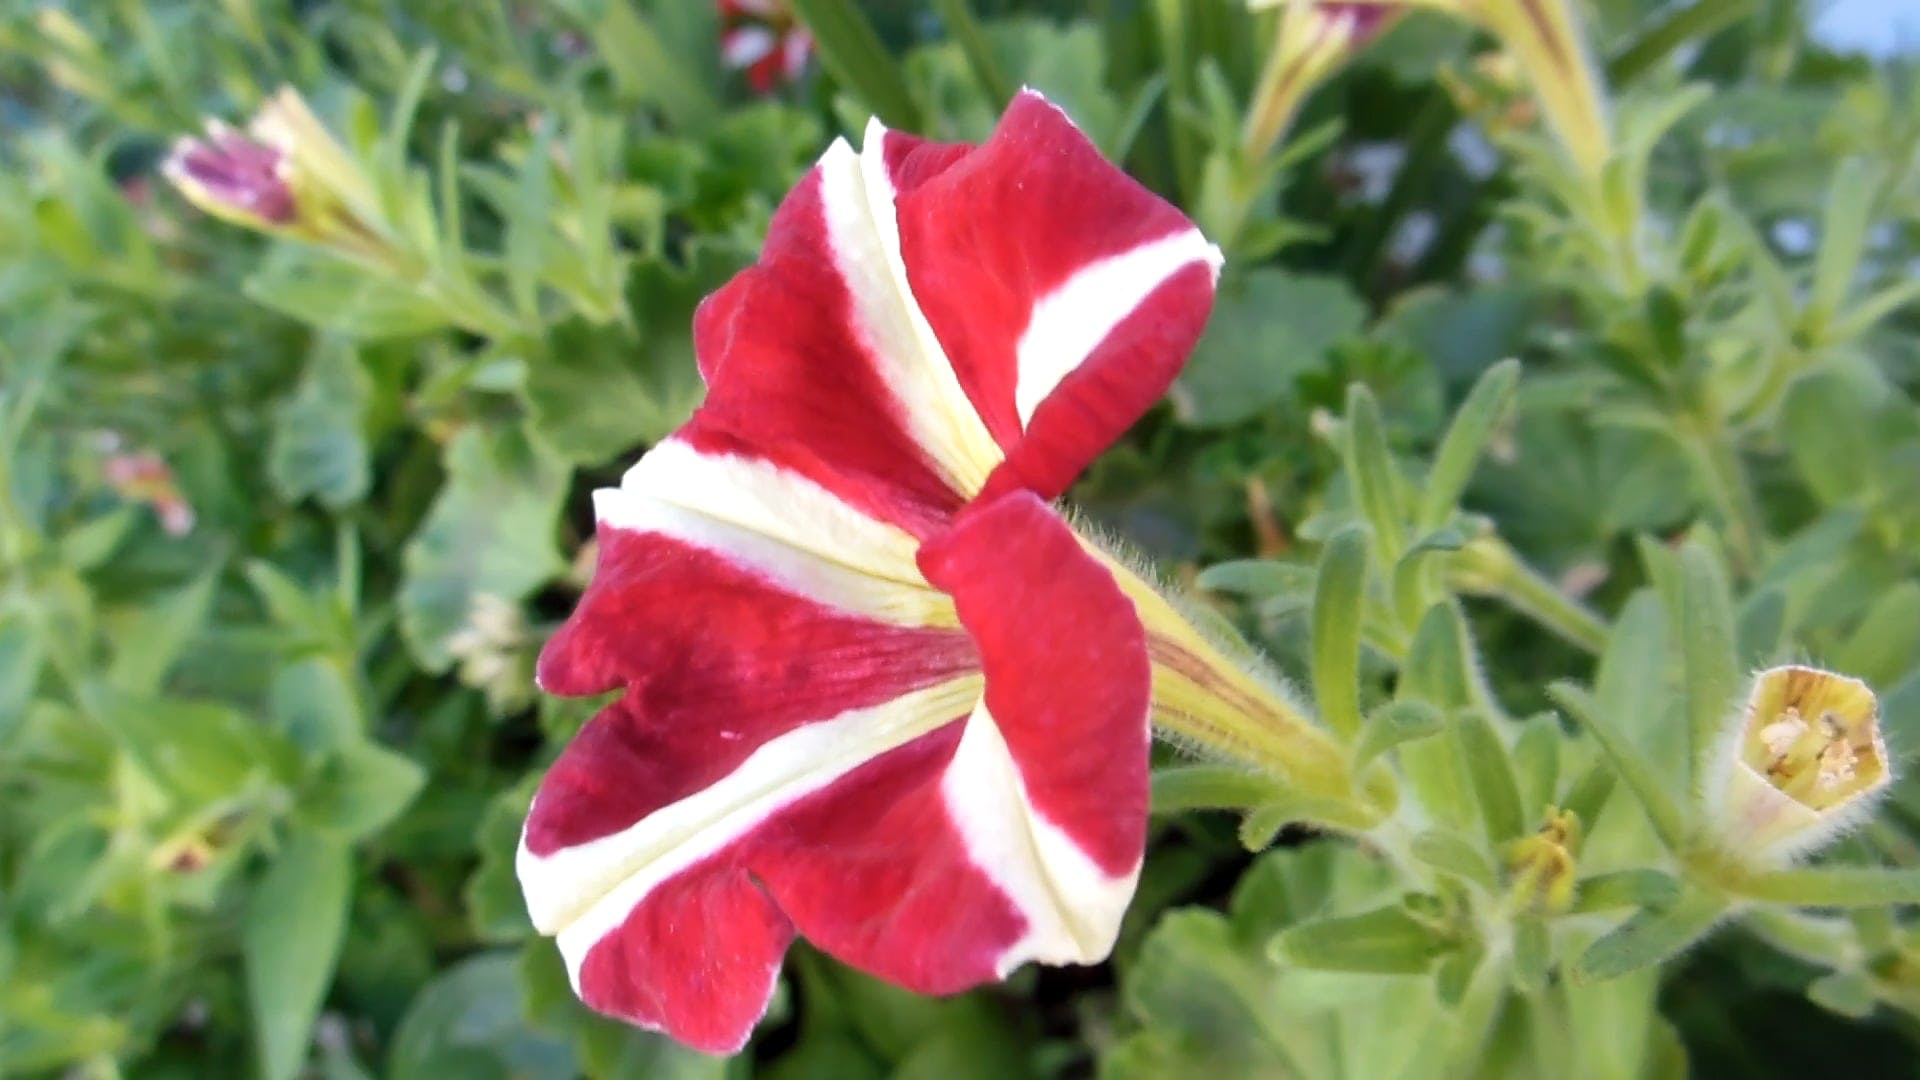 Side View Of A Red Flower